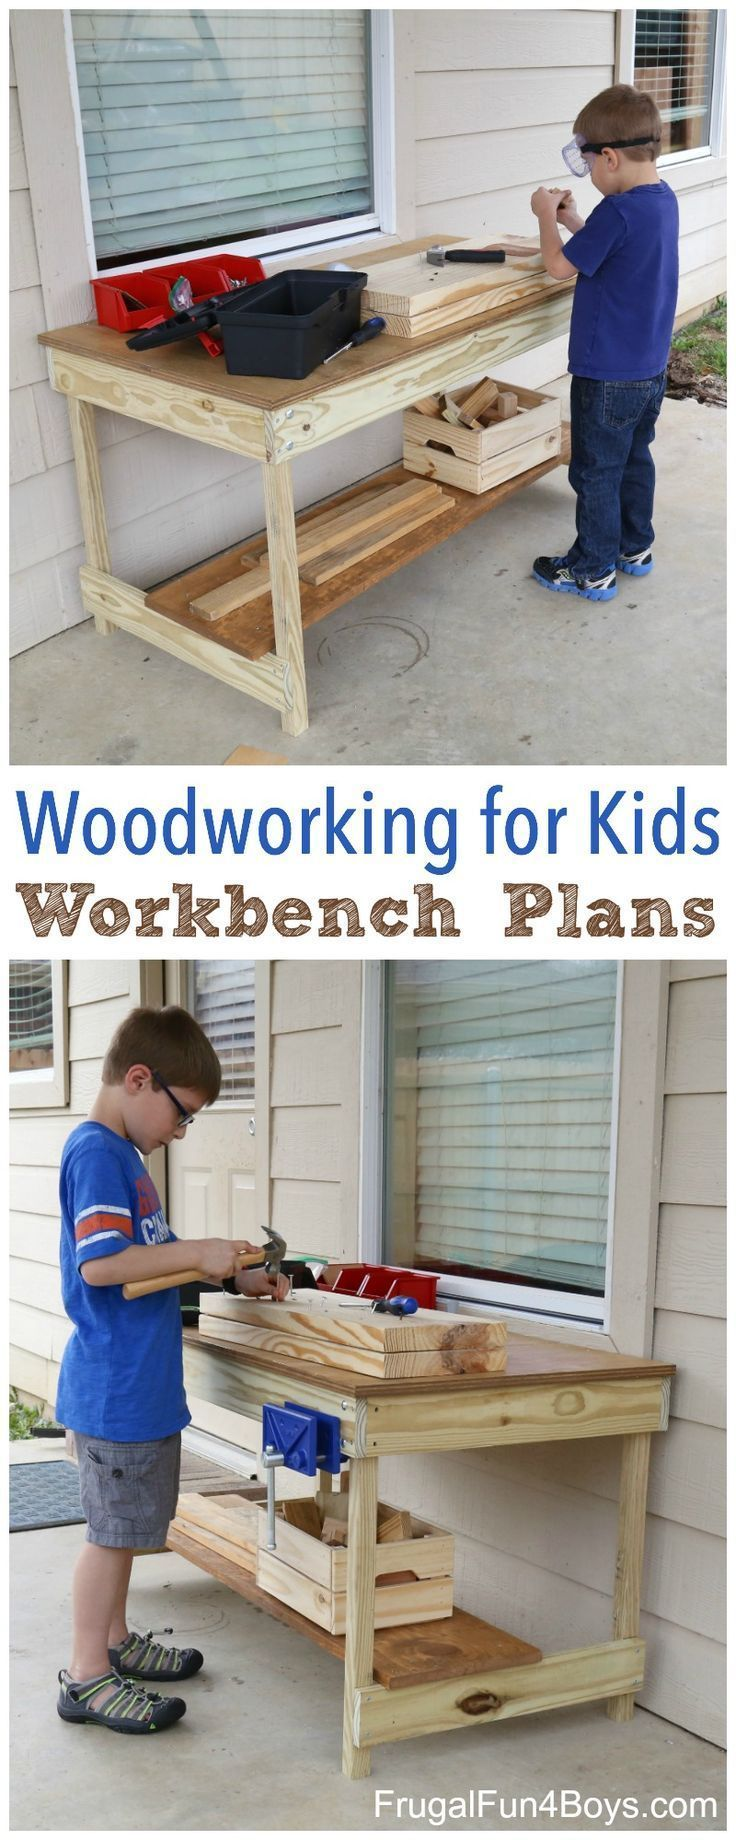 best 25+ tool bench ideas on pinterest | diy garage work bench